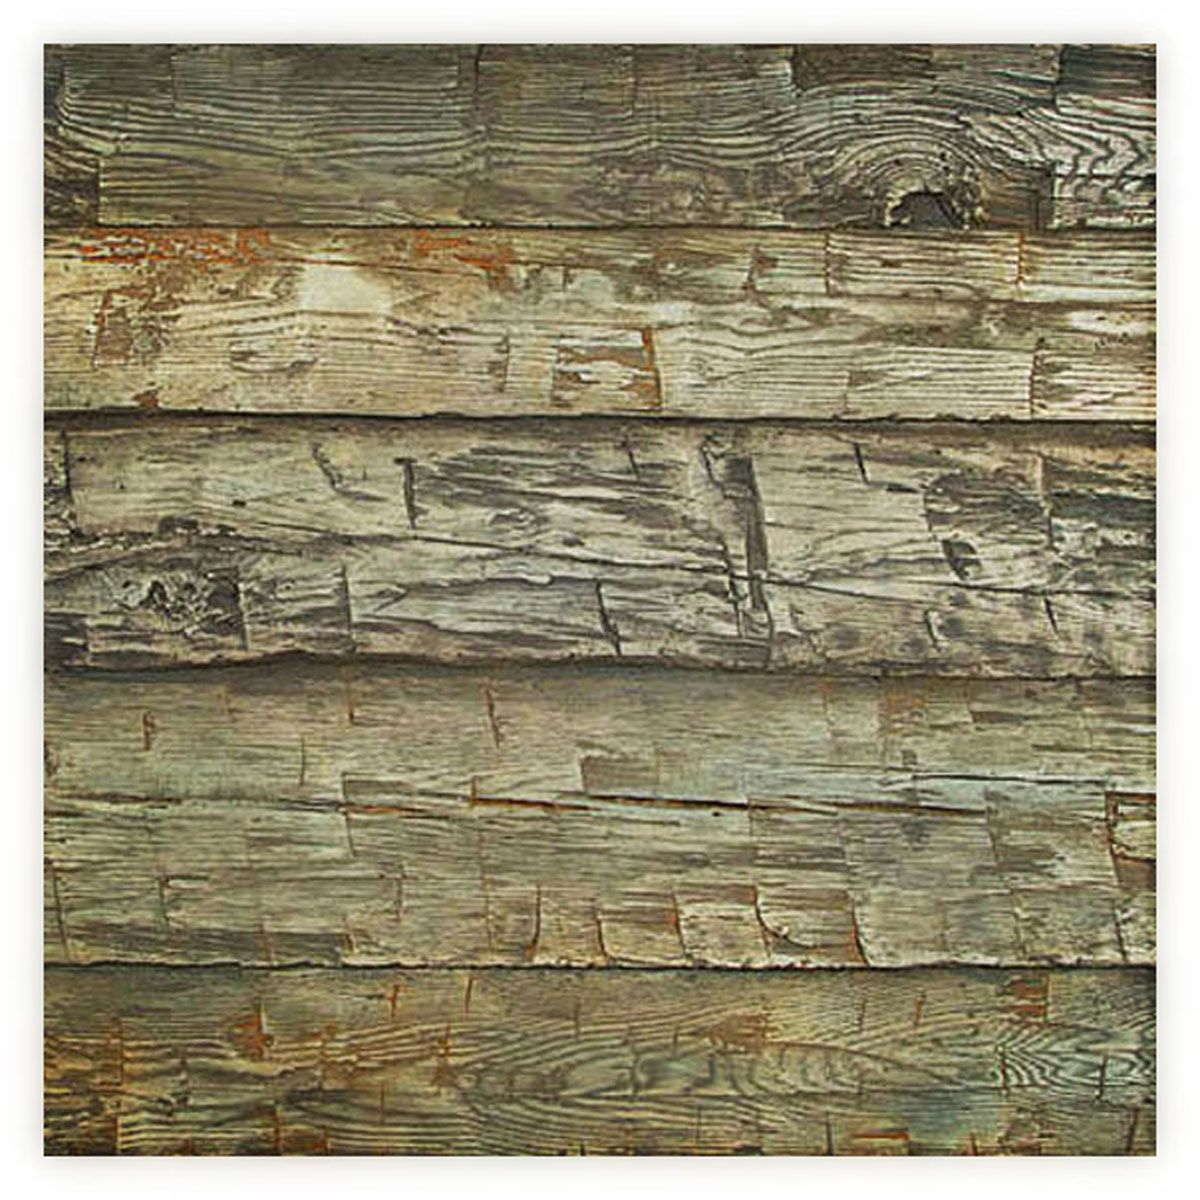 8 Inch W X 10 Inch H Hand Hewn Endurathane Faux Wood Siding Panel Sample Weathered Blue Wood Panel Siding Wood Siding Faux Wood